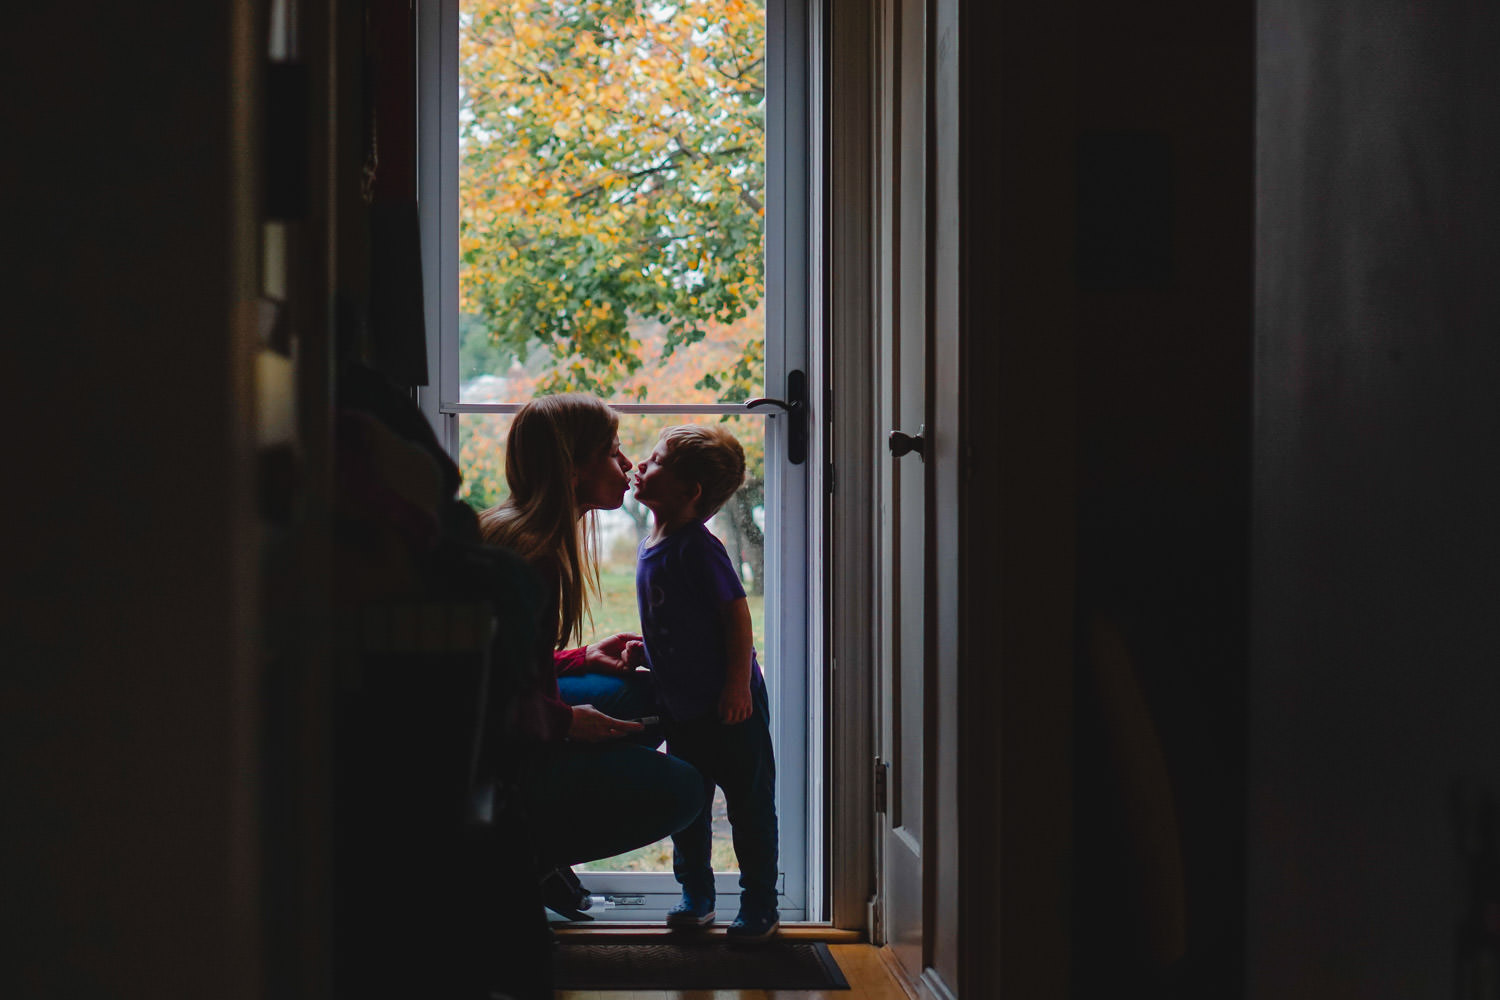 A mother kisses her son in front of a glass storm door.